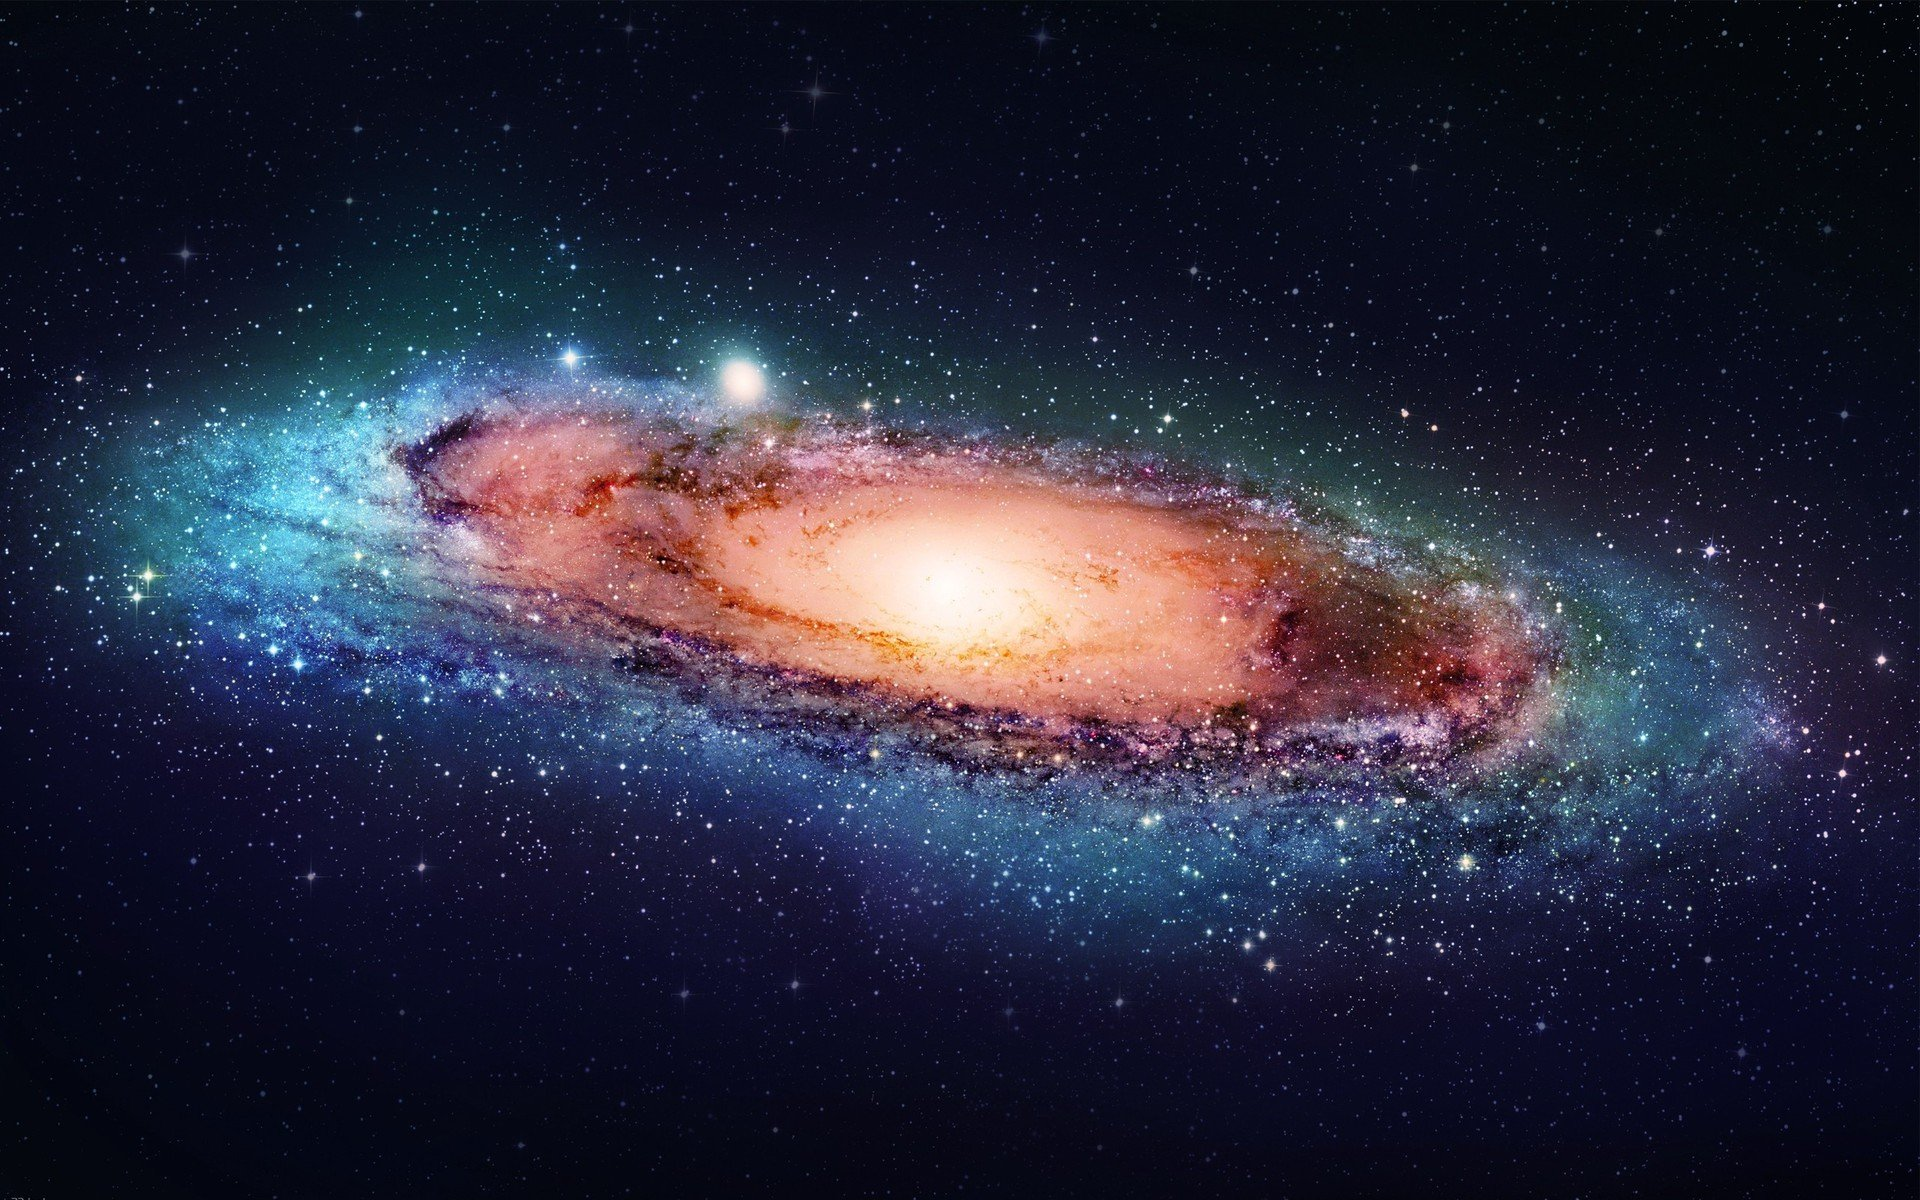 Galaxy Space Wallpaper 4k Apk Download: NASA 4K Wallpapers